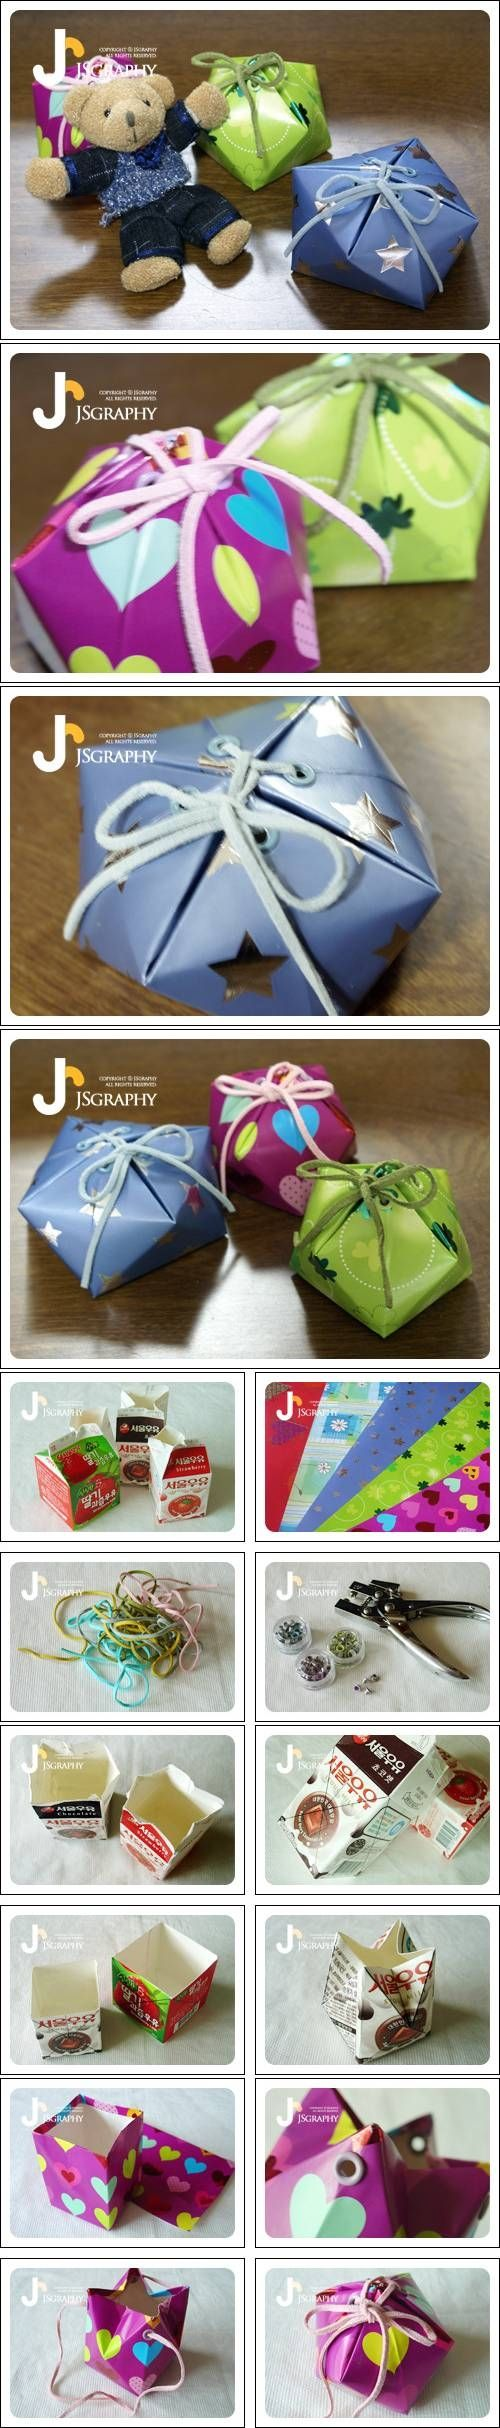 DIY Milk Carton Gift Box Pictures Photos And Images For Facebook Tumblr Pinterest Twitter